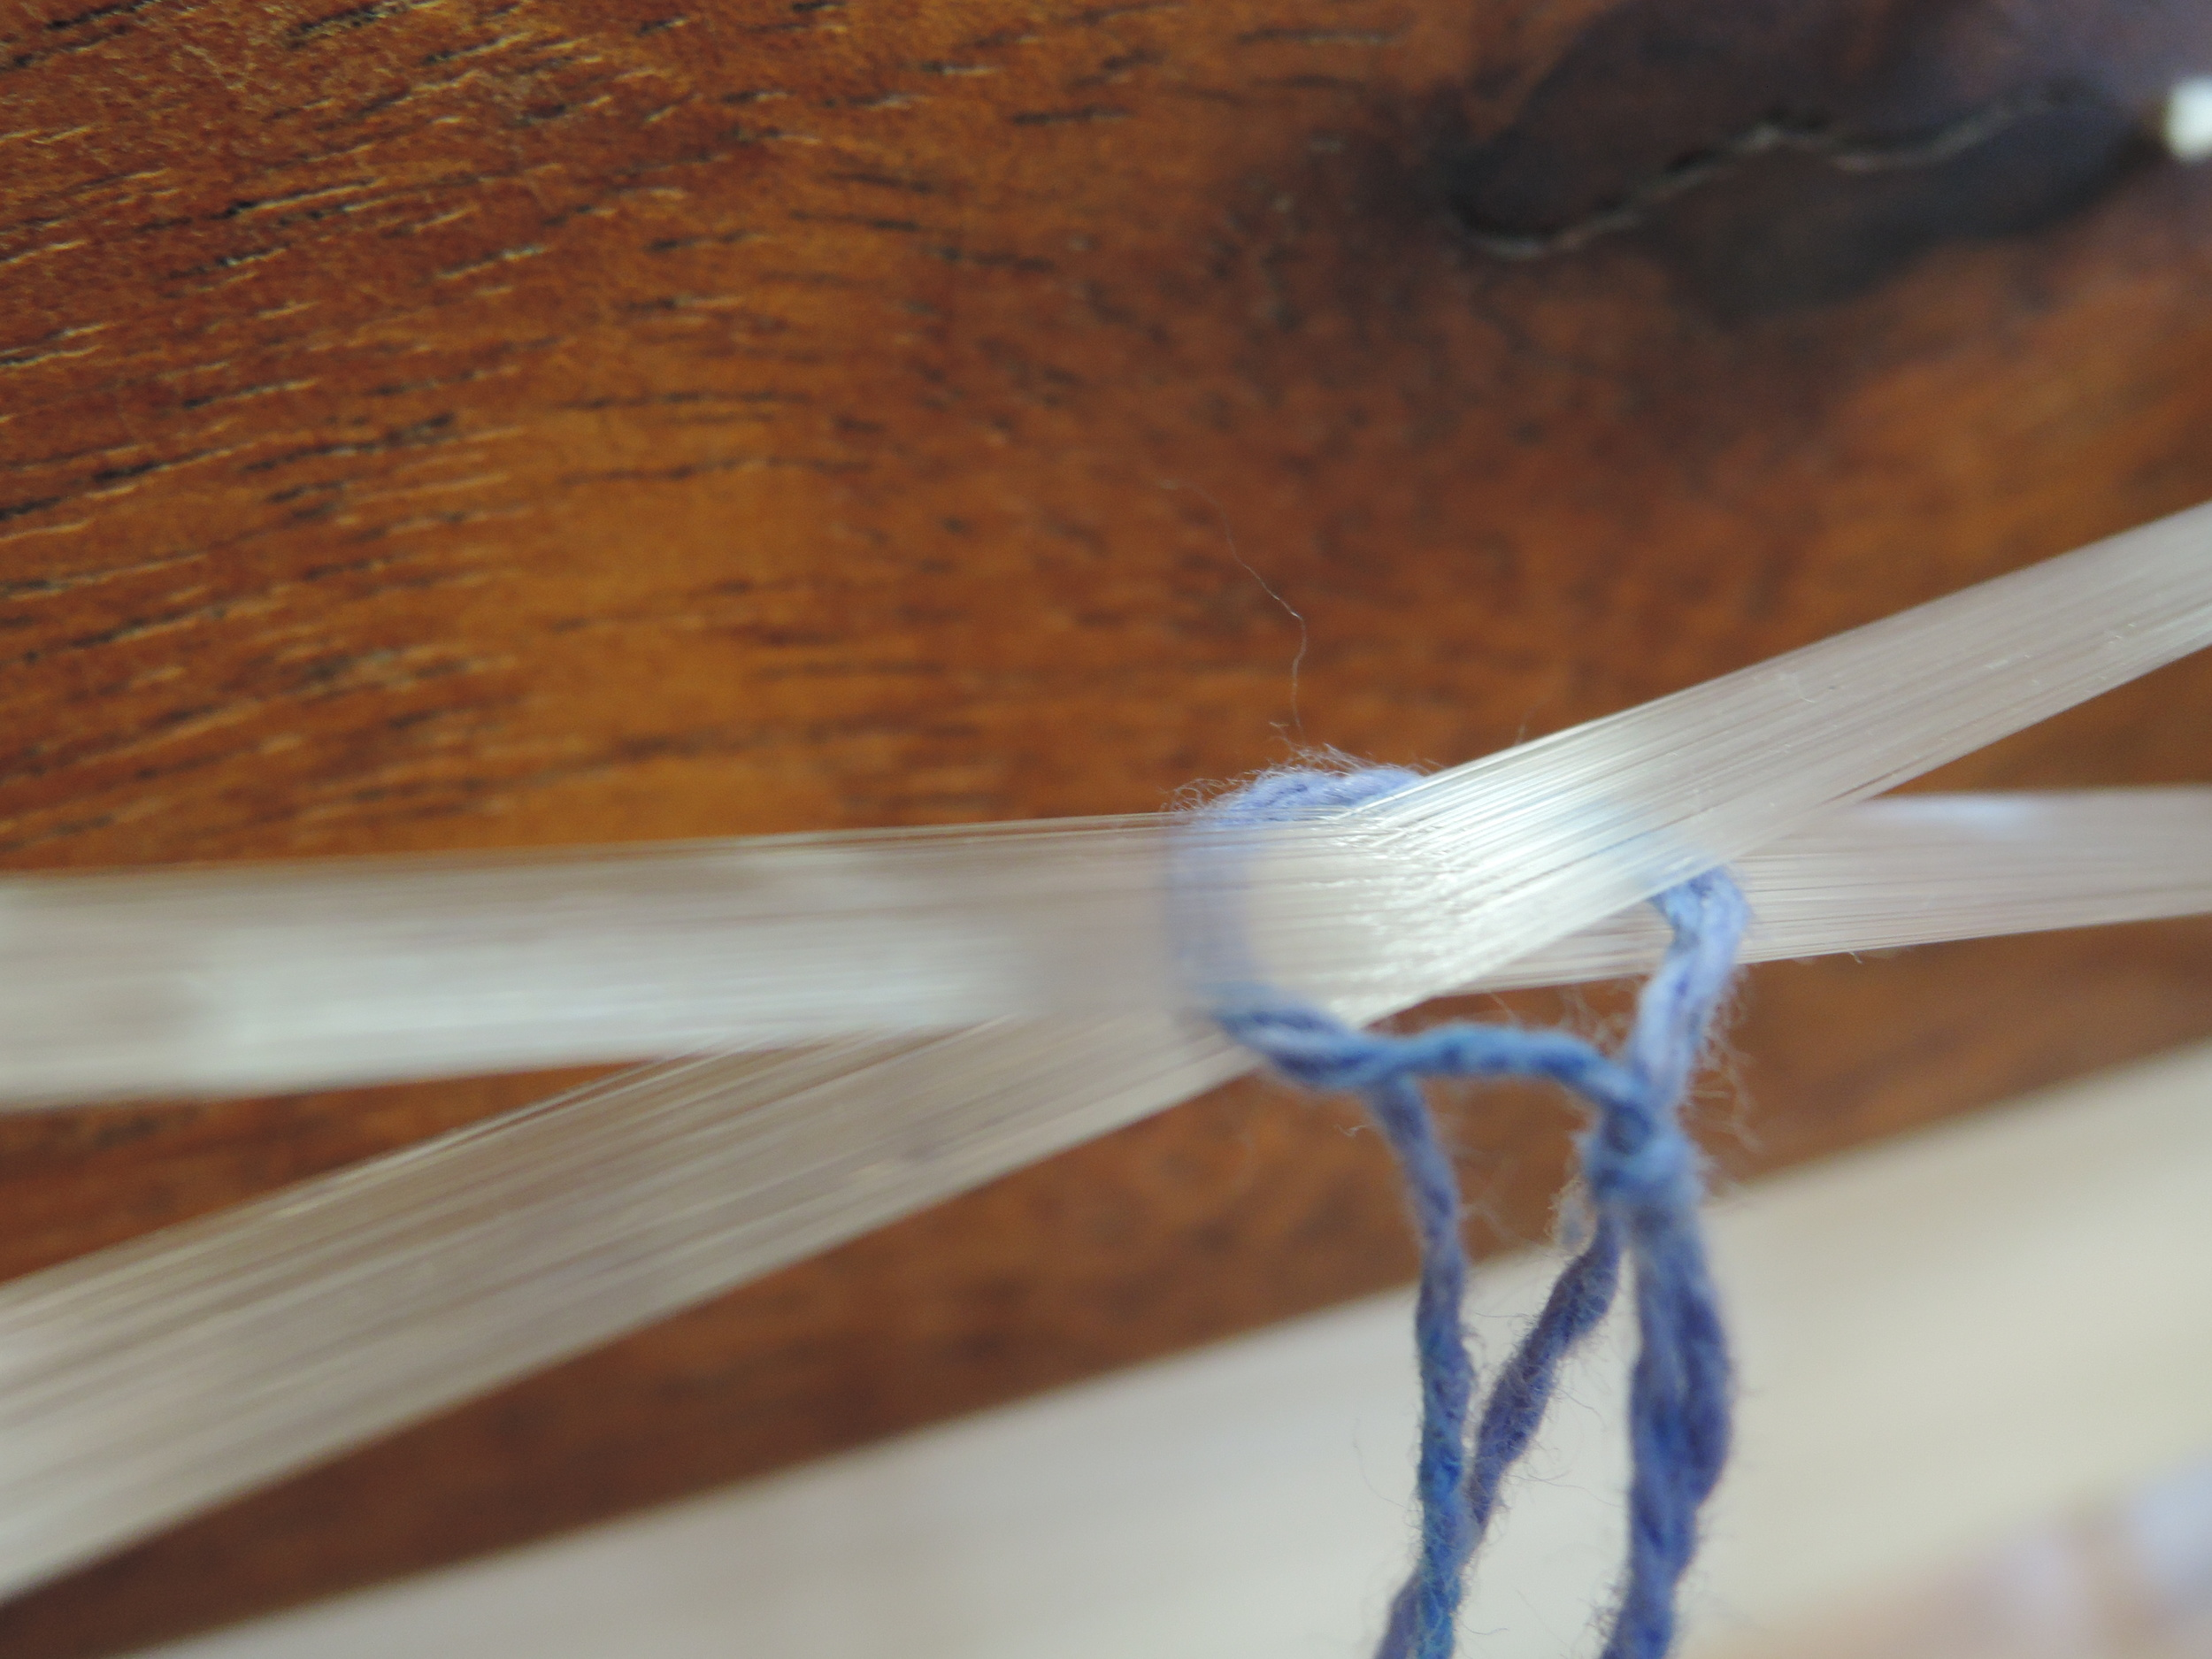 This is the cross that keeps every single one of these fibers in exactly the same order as I dress the loom.